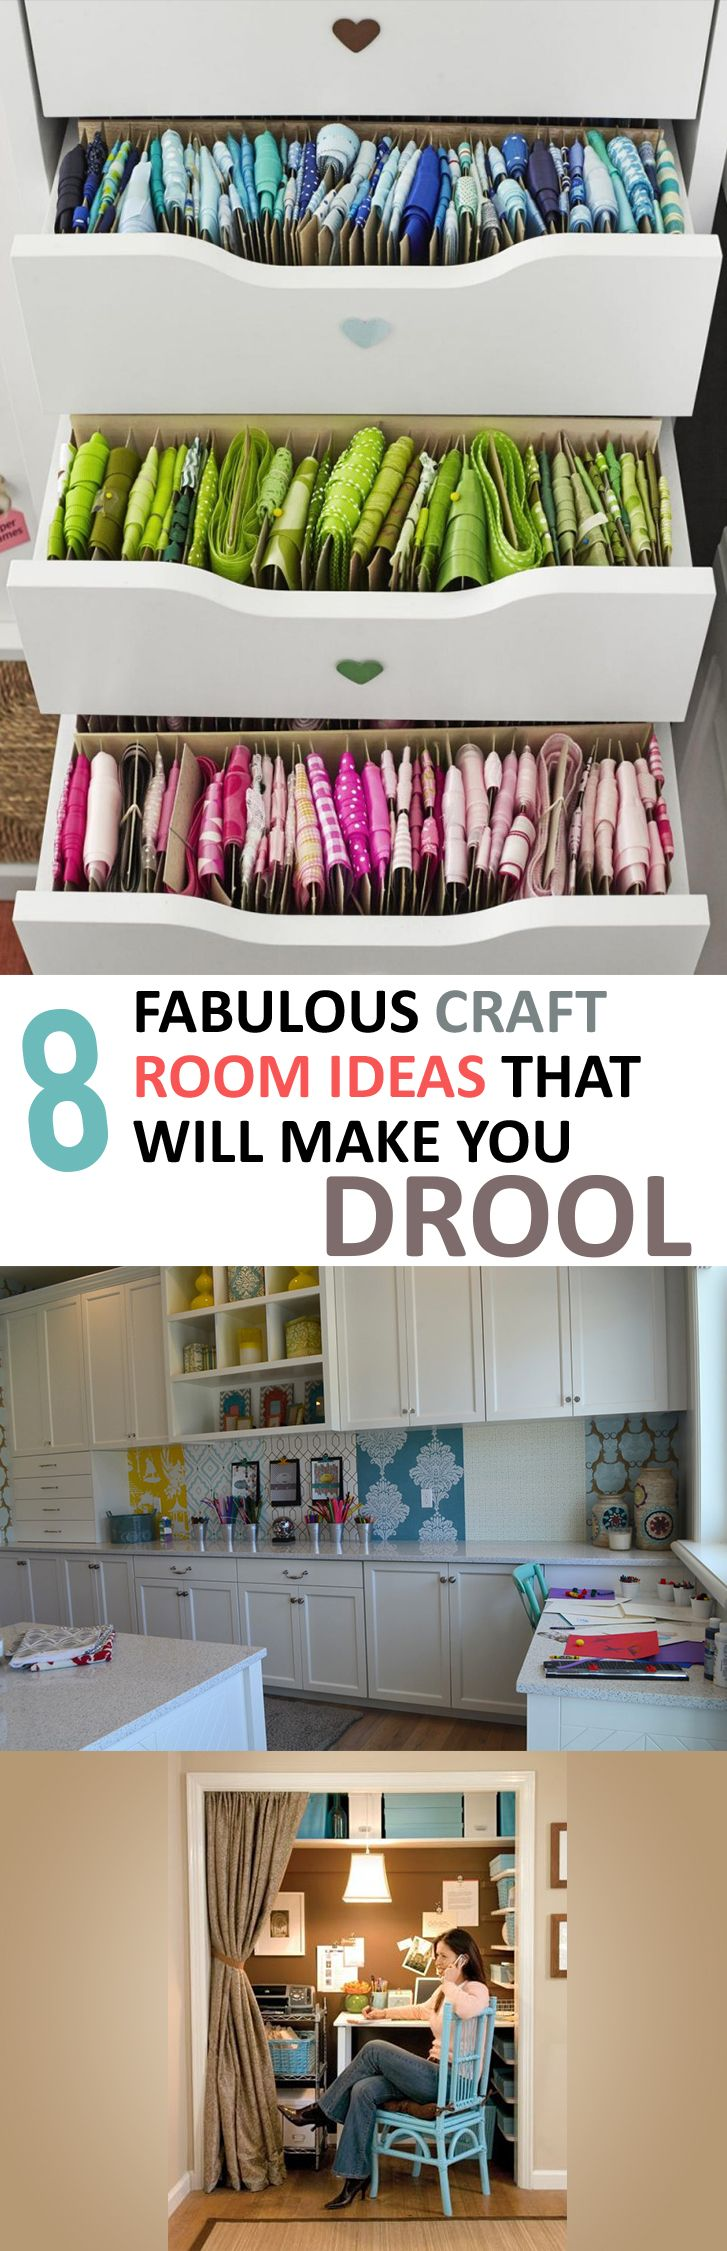 Diy, diy home projects, home décor, home, dream home, craft room, beautiful craft room, craft room inspiration.